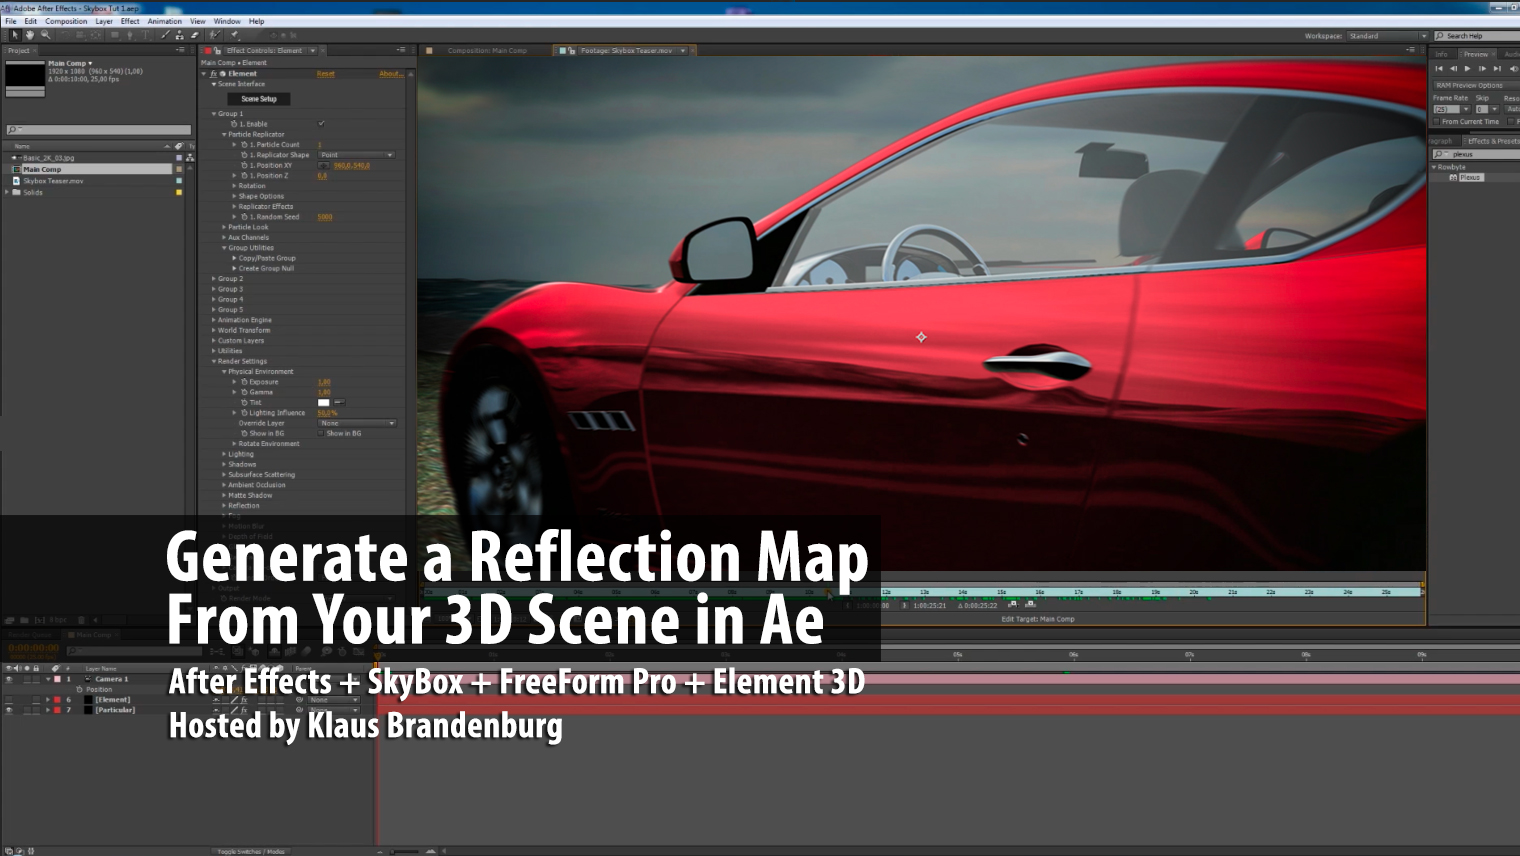 Reflect-Your-3D-Scene